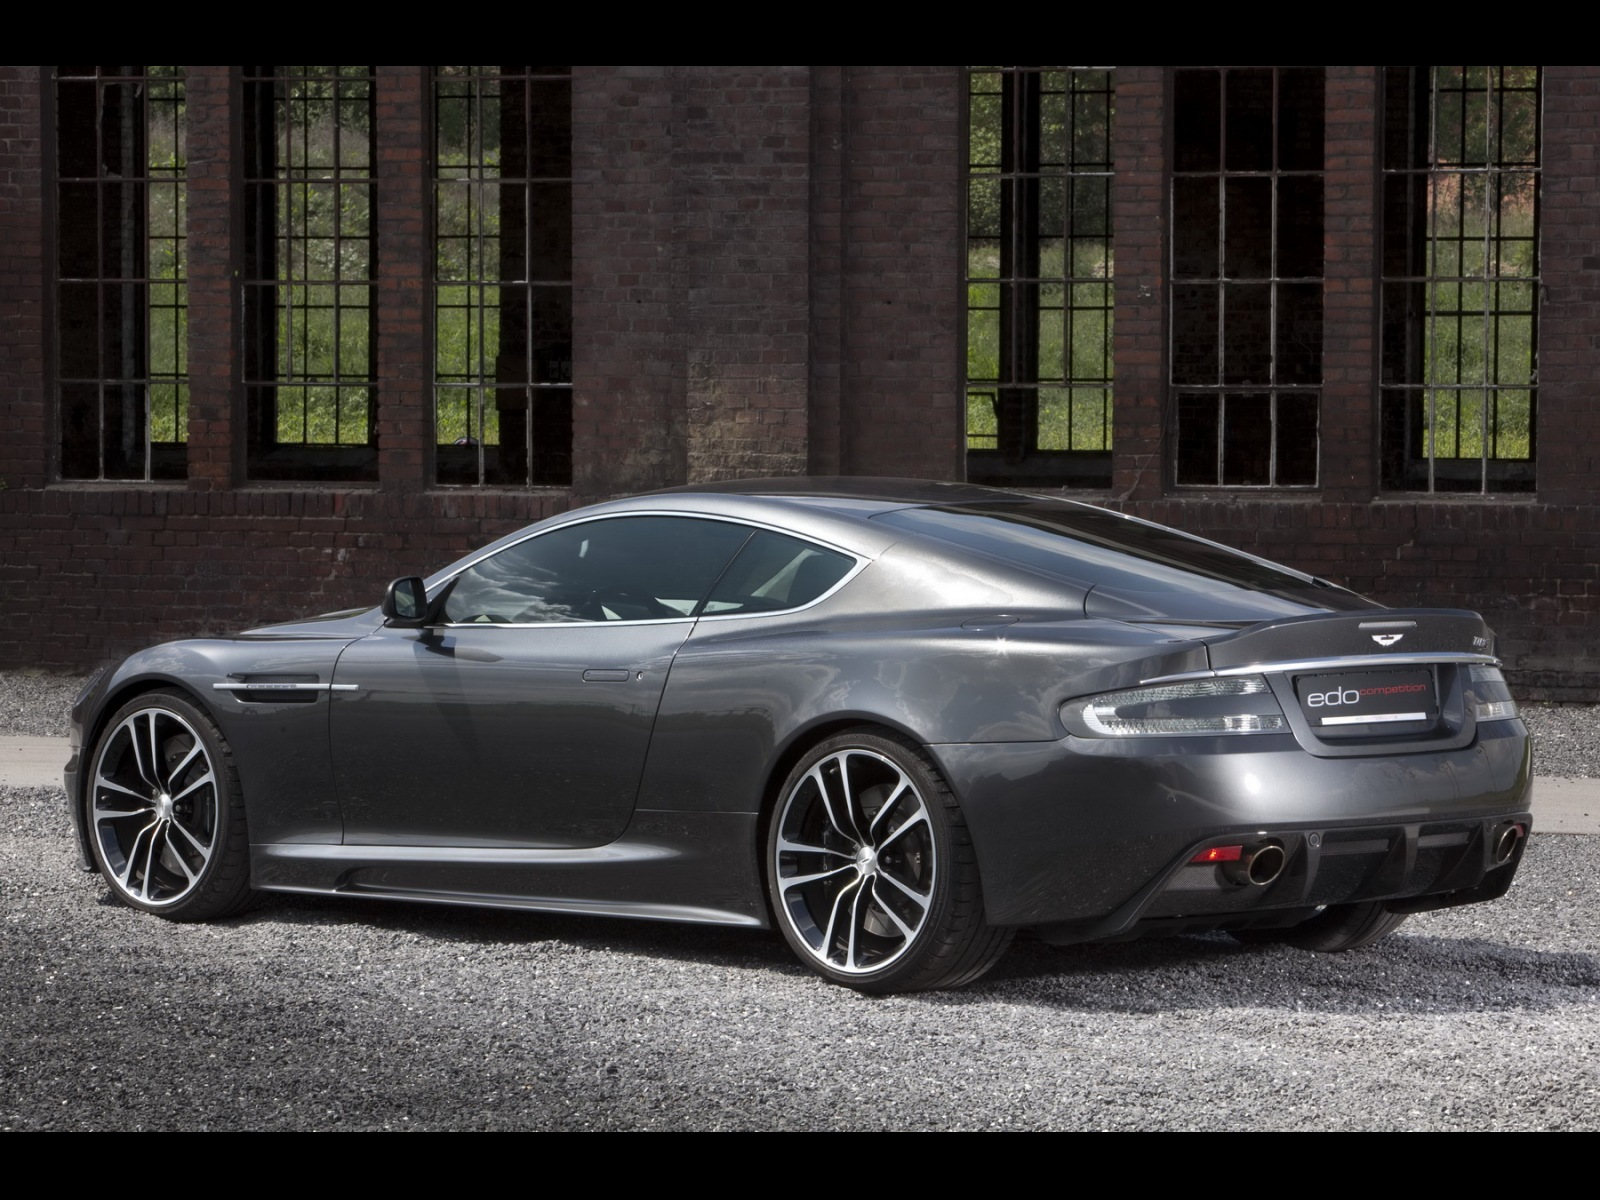 edo competition Aston Martin DB9 photos and wallpapers   tuningnews 1600x1200